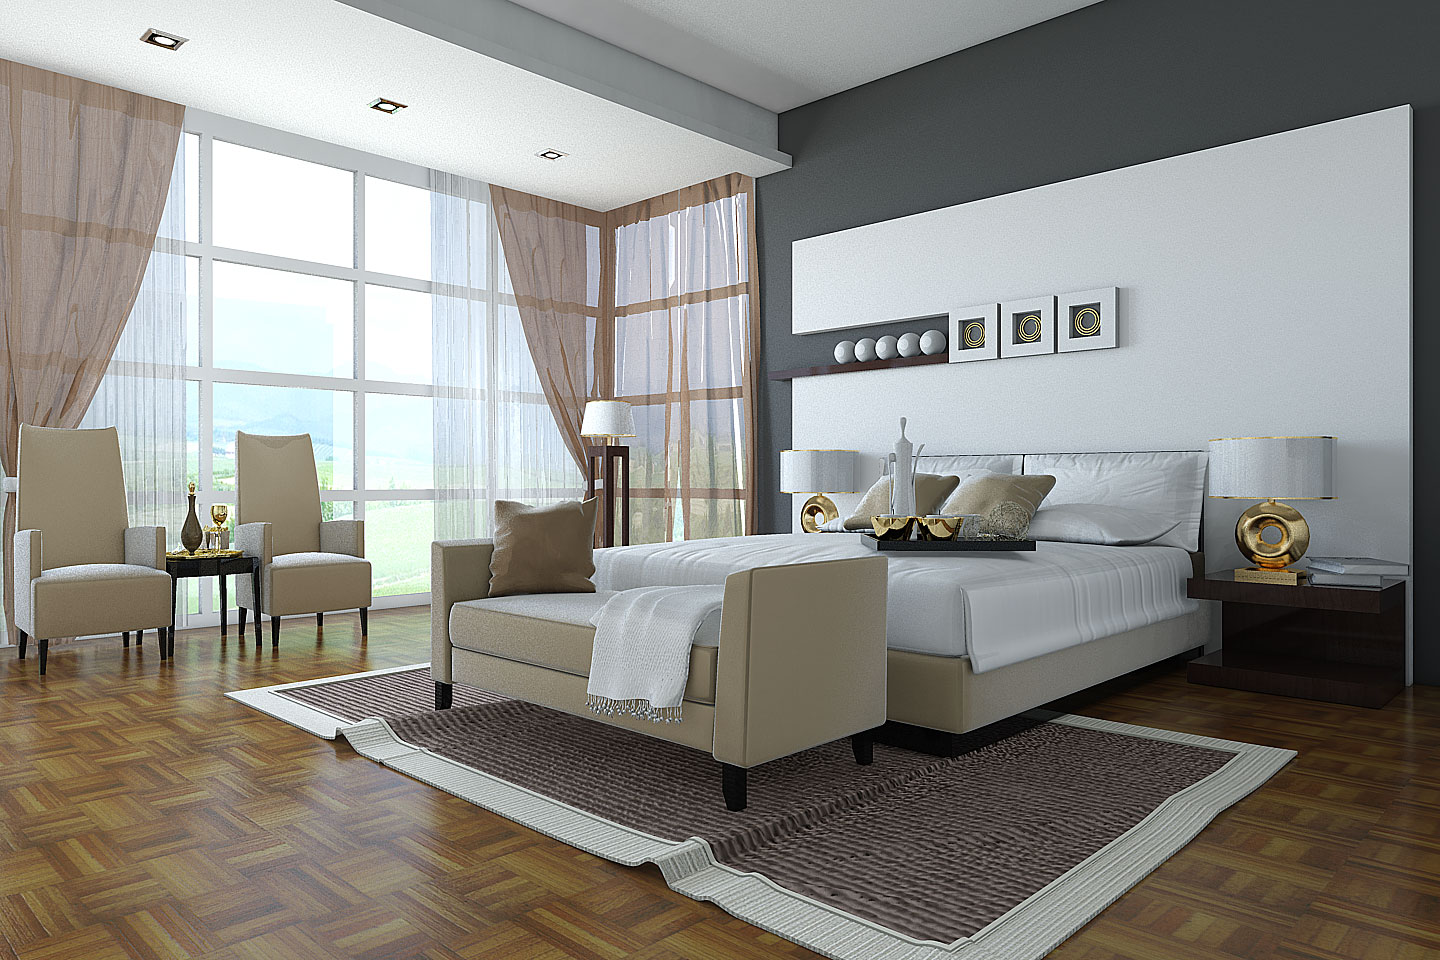 classic bedroom design - Bedrooms By Design